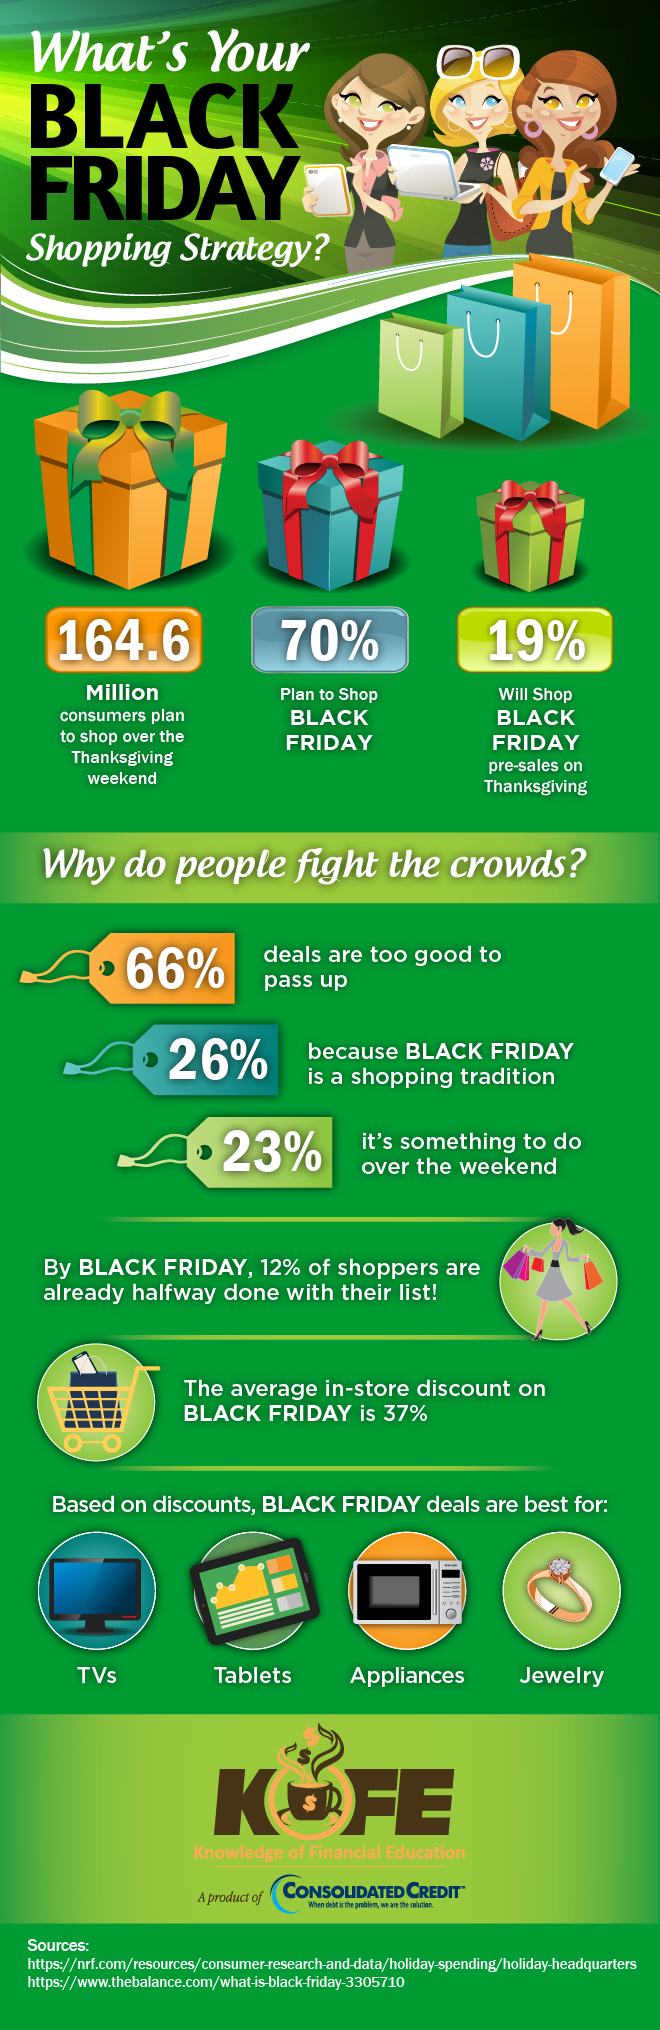 Black Friday Shopping Strategy infographic